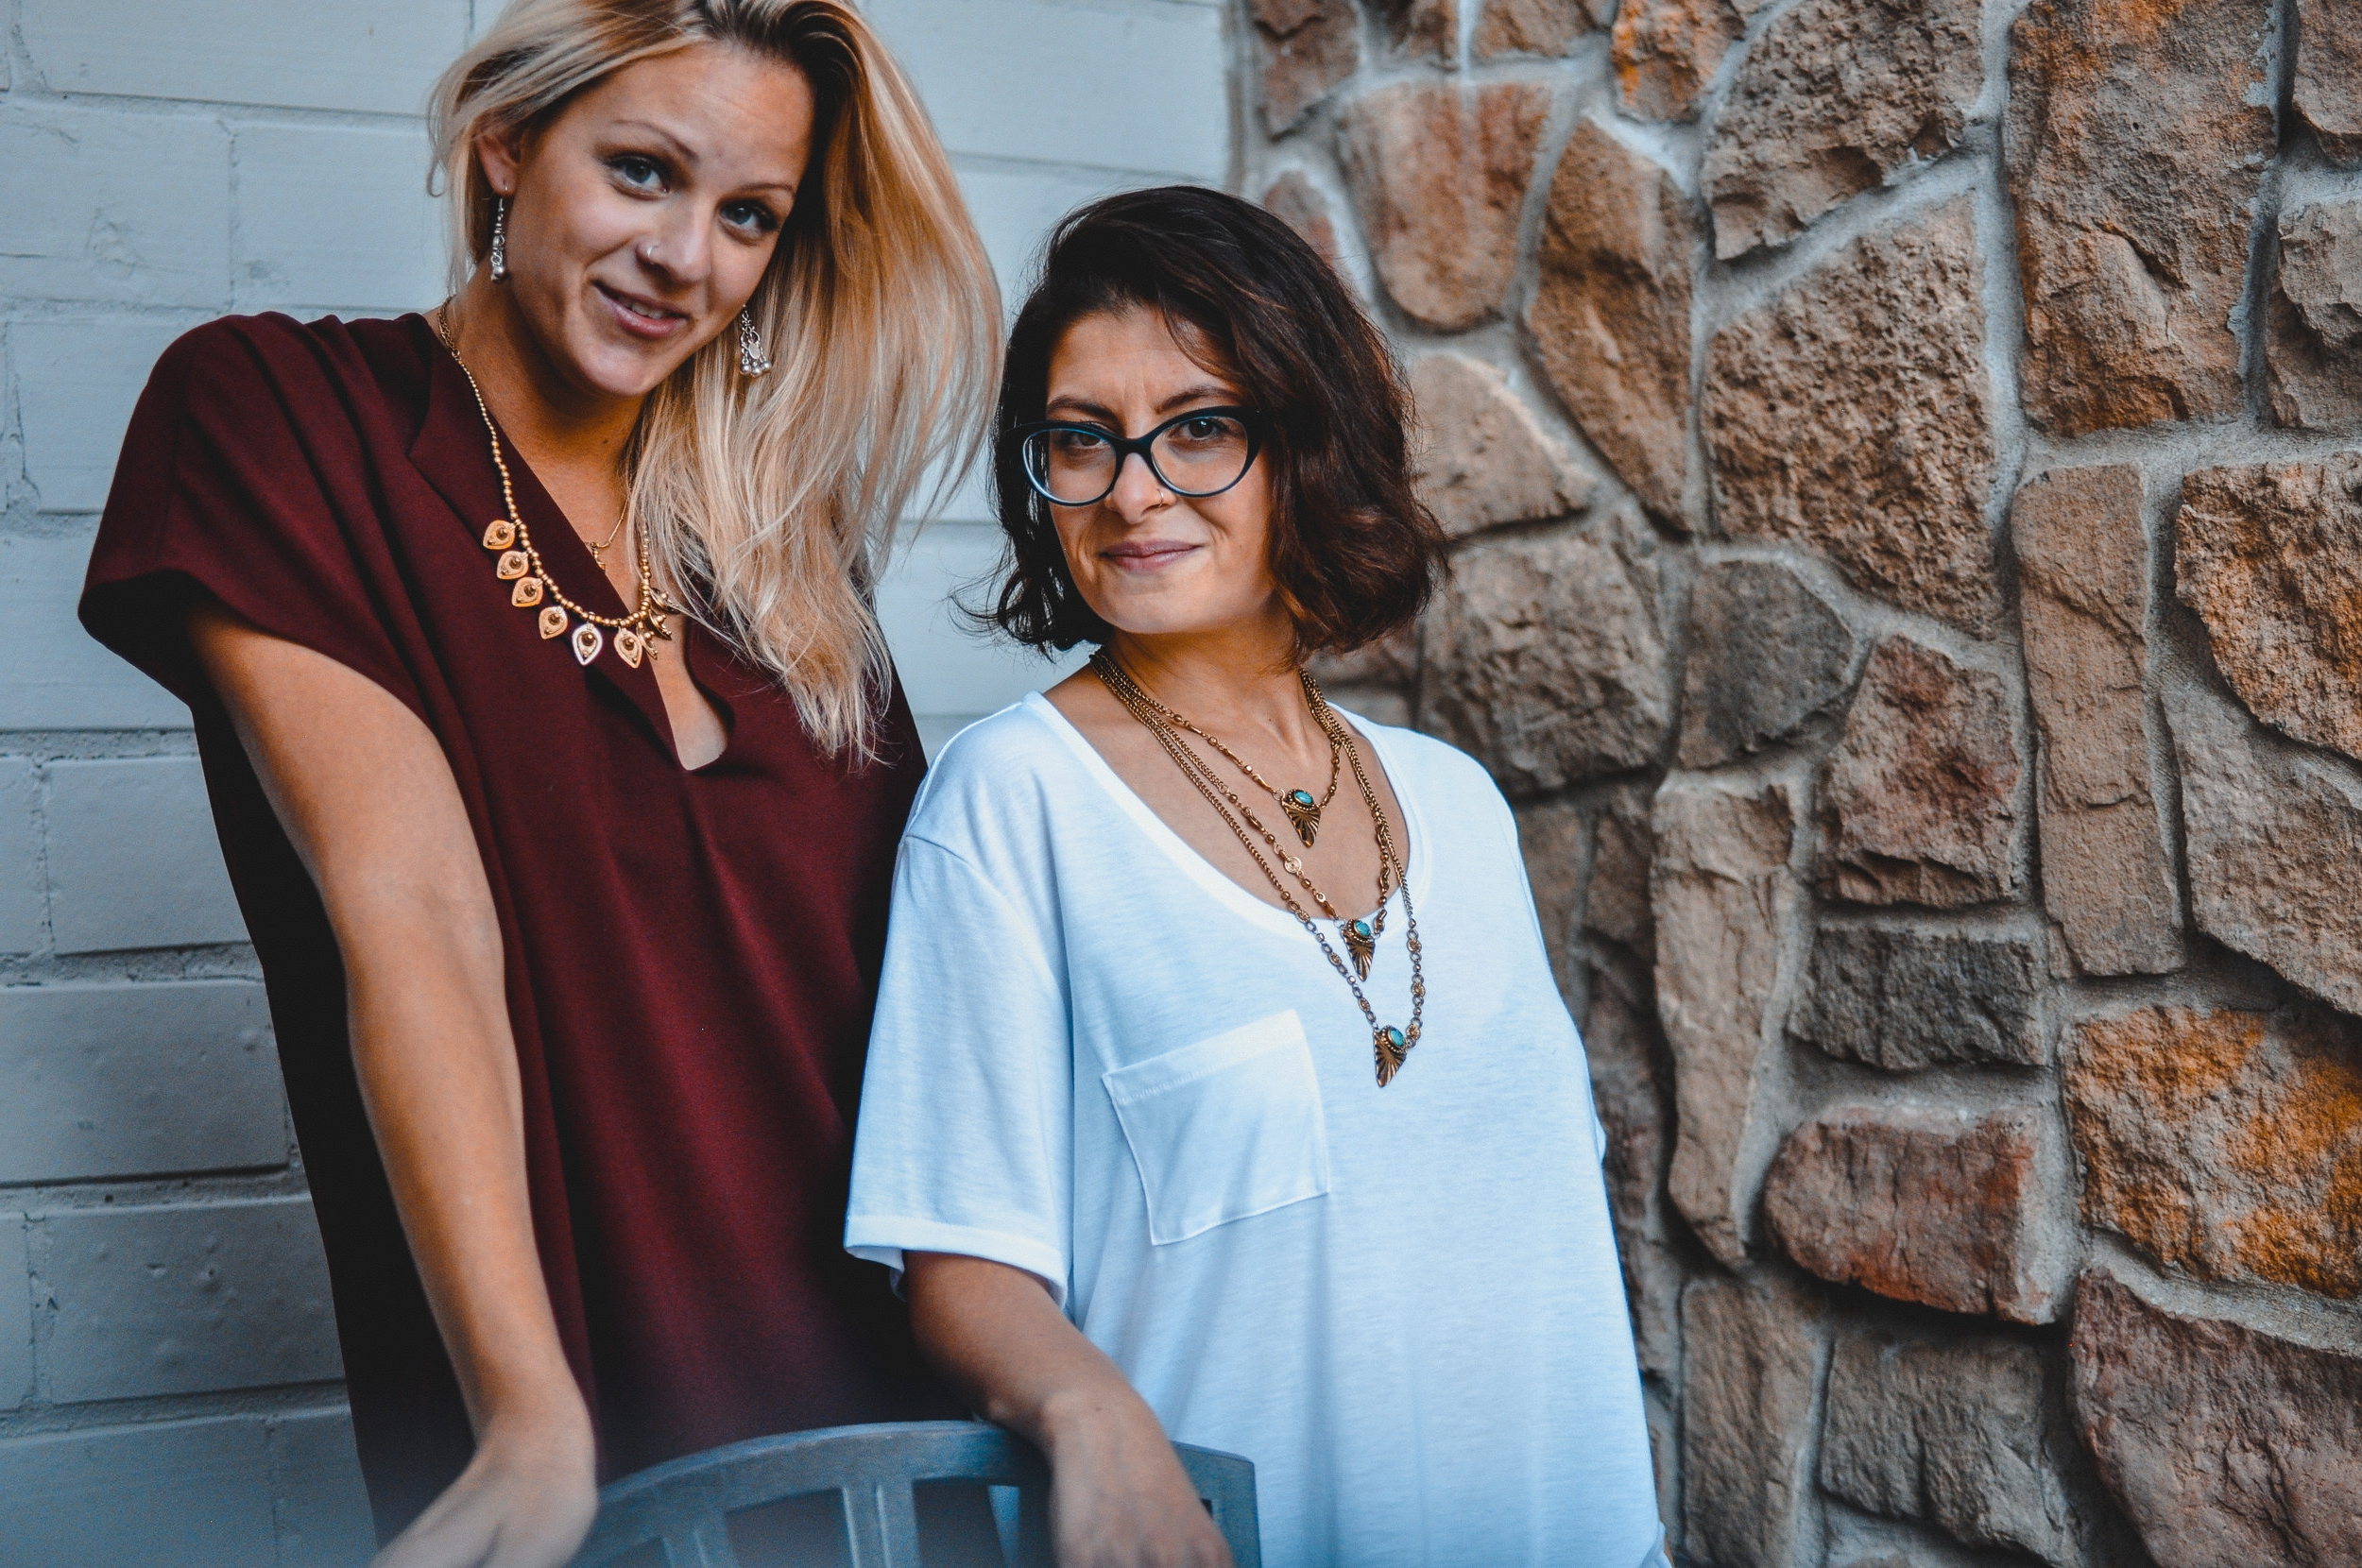 Statement Necklace Trends via VOGUE - Are you in the know with Vogue's Trend Reports? Have you been seeing statement necklaces everywhere!? Thats why! Grab the Fall trend in easy to layer necklaces or stand alone statement pieces.